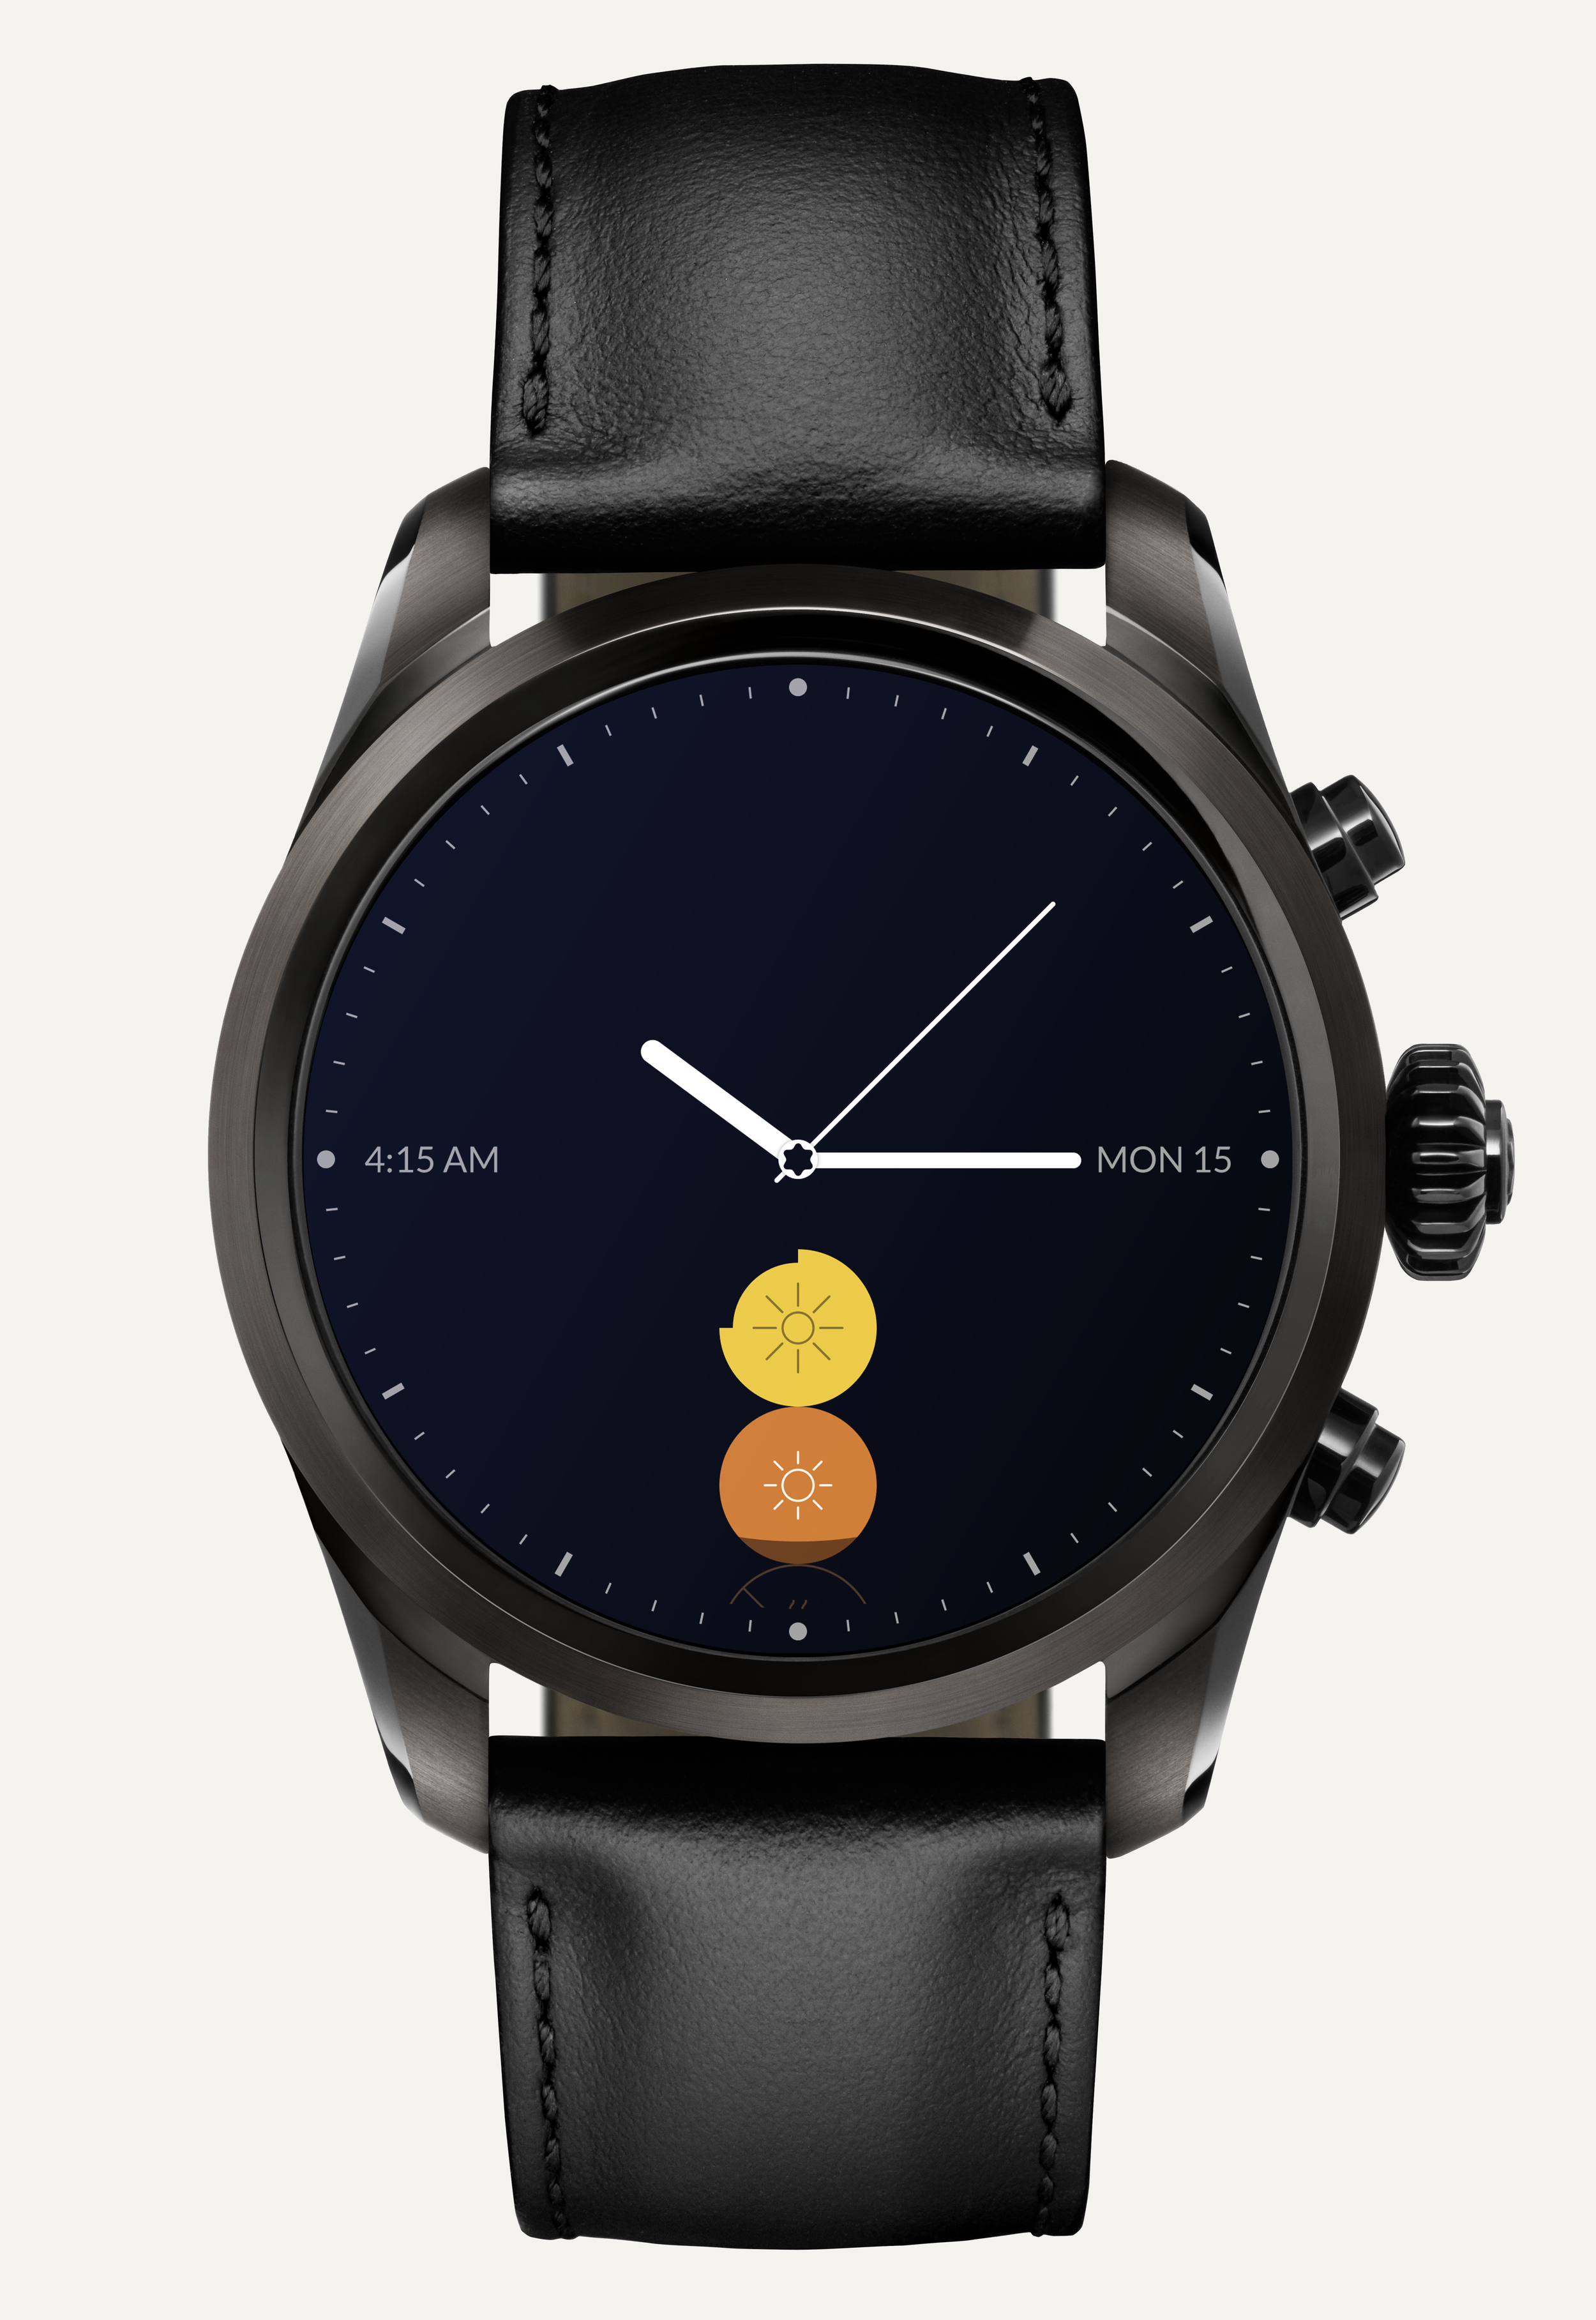 The Timeshifter jet lag watch face on Montblanc Summit 2 with Wear OS by Google